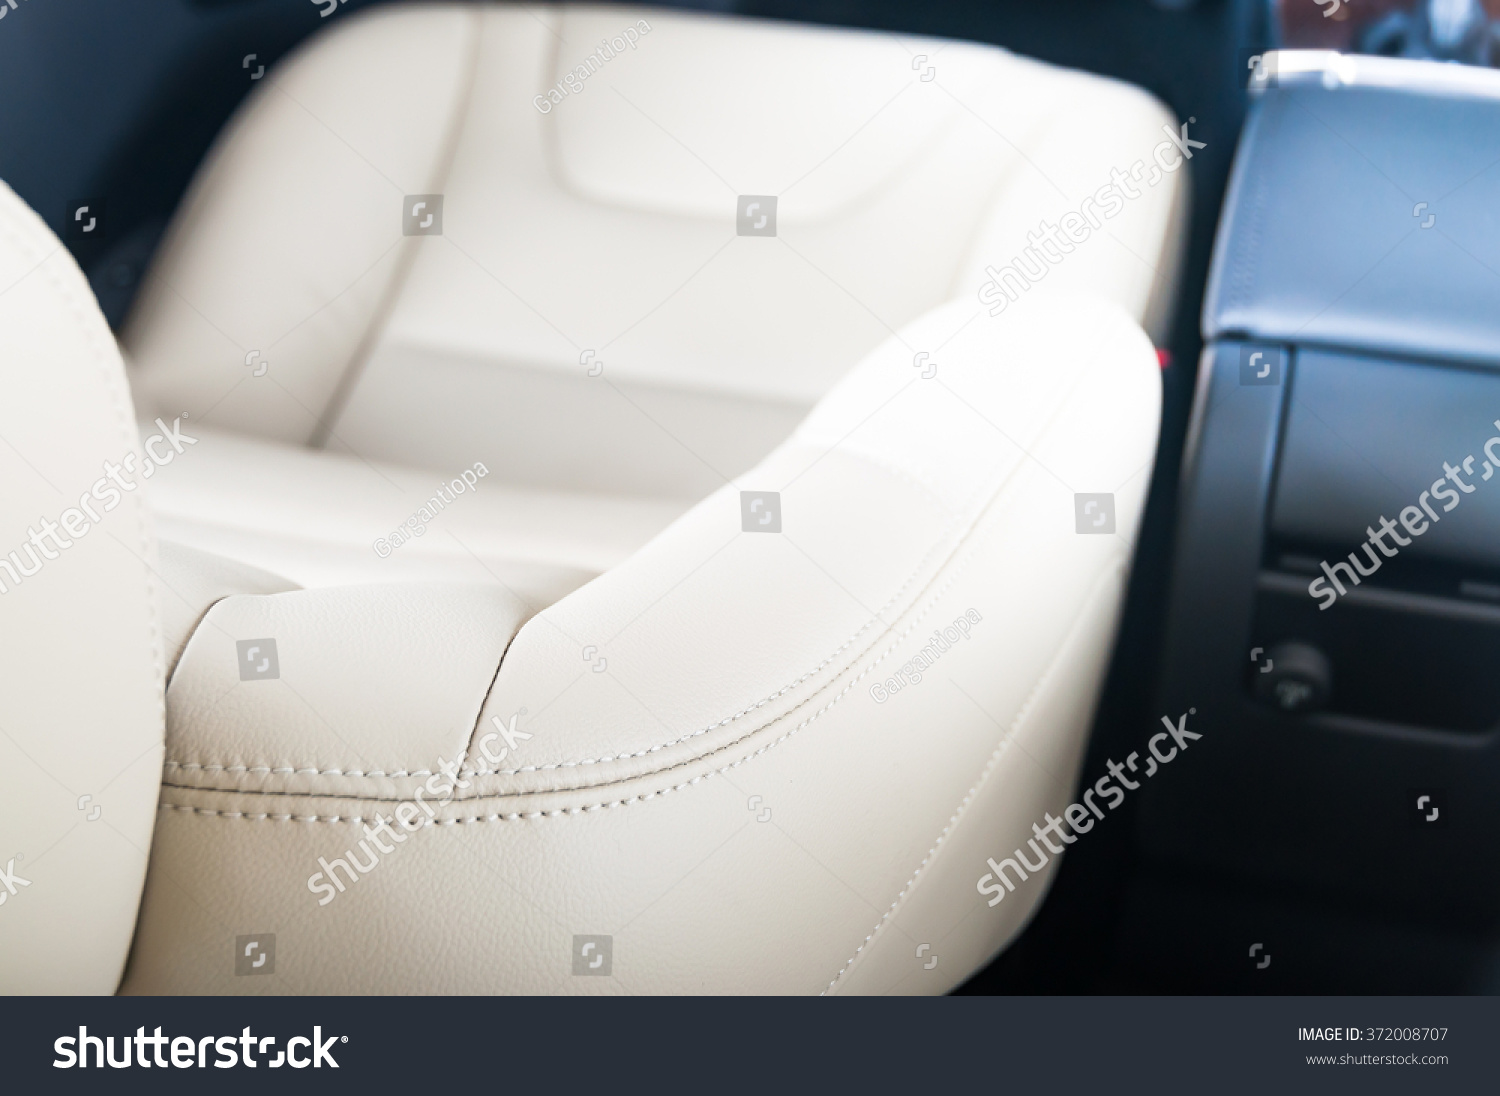 modern car interior white leather car stock photo 372008707 shutterstock. Black Bedroom Furniture Sets. Home Design Ideas